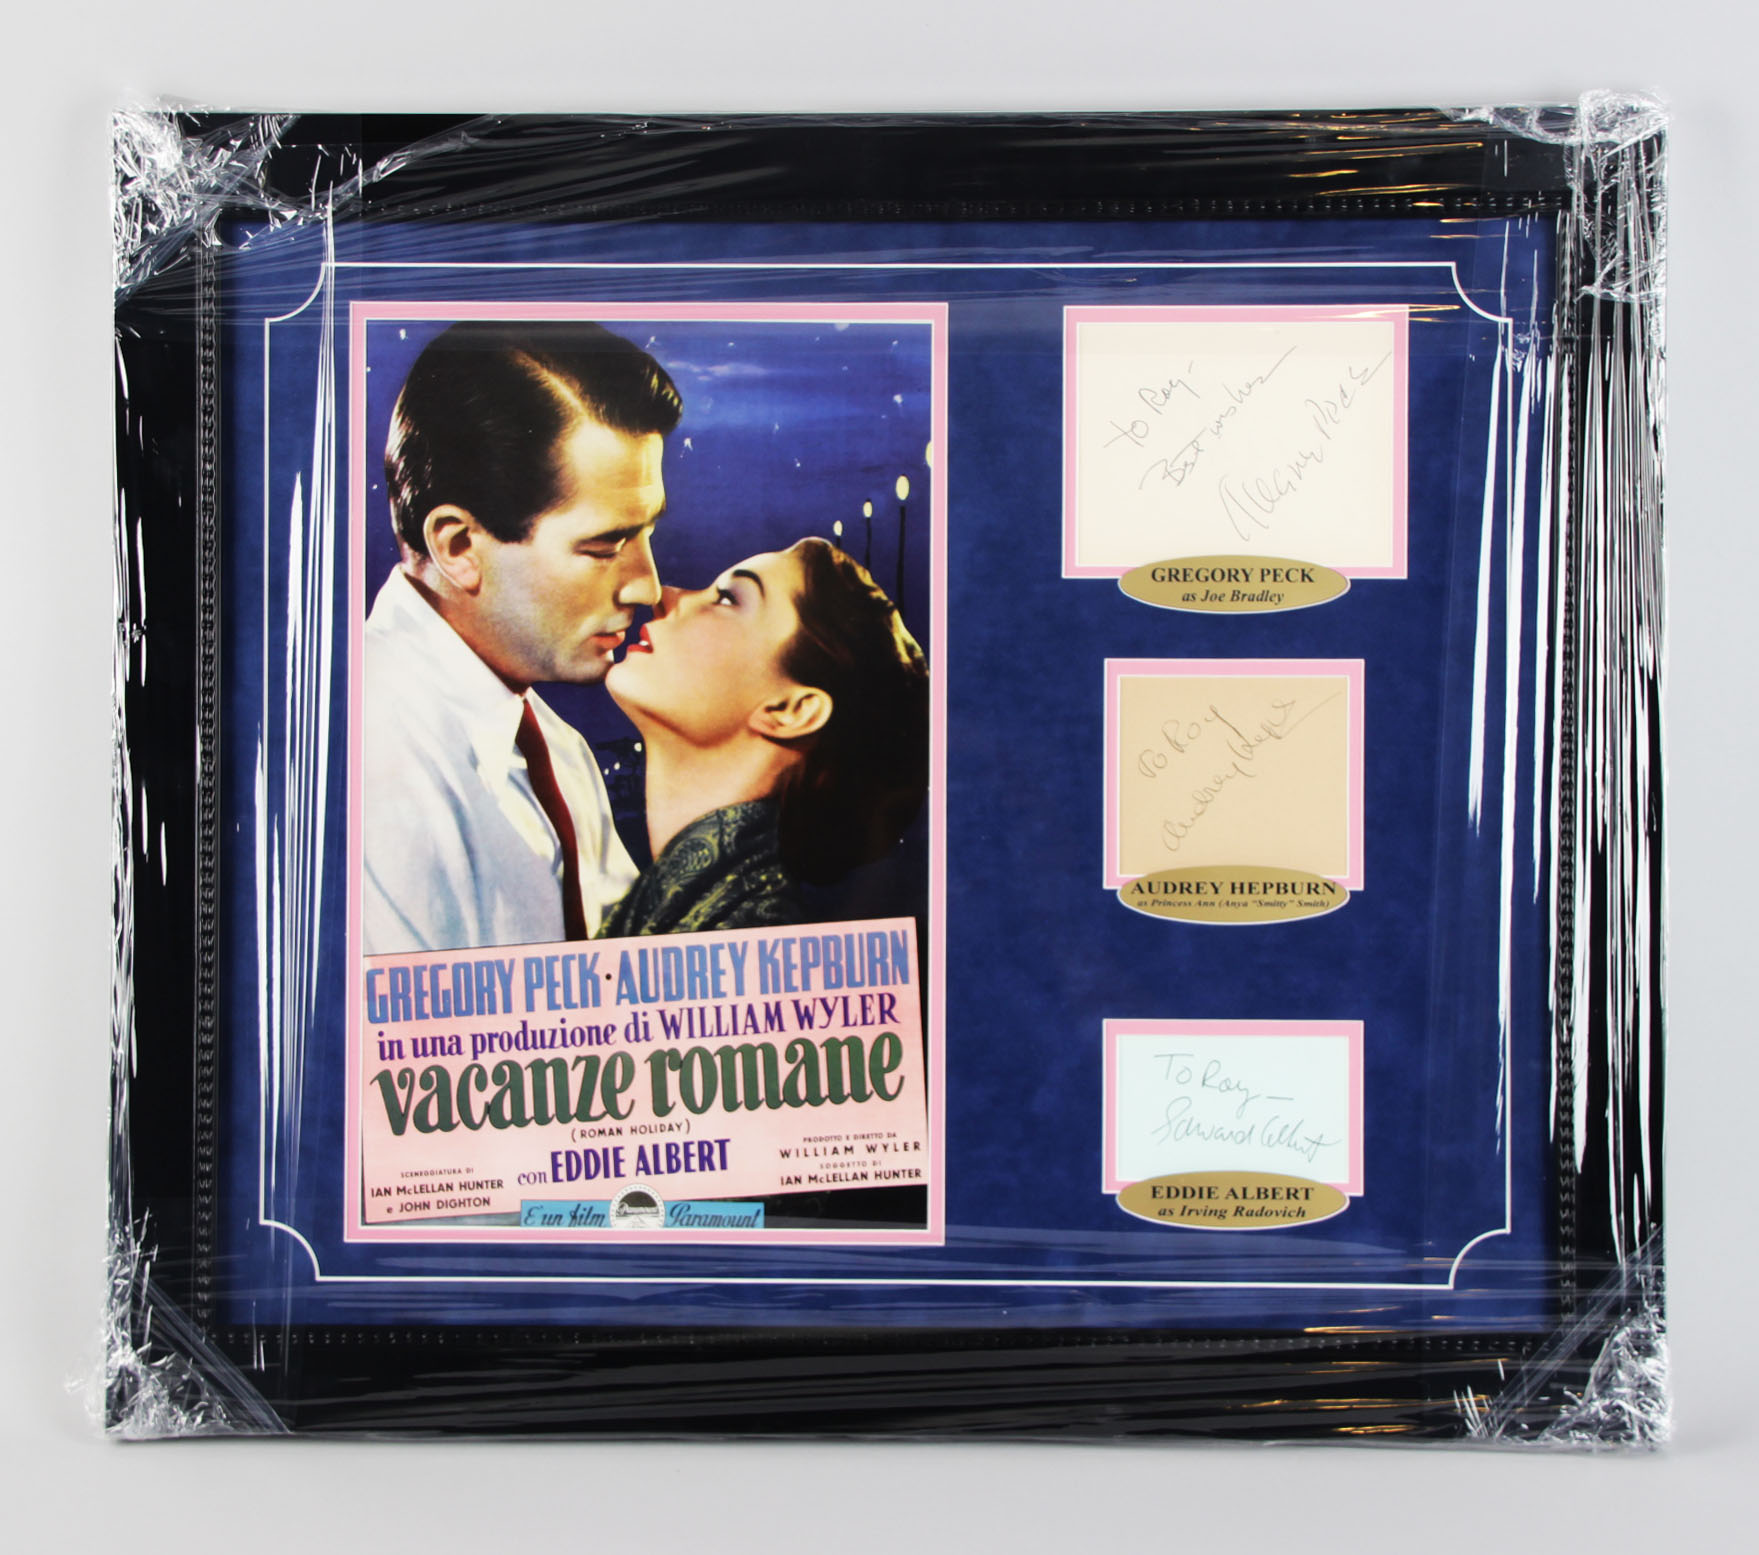 Roman Holiday – Gregory Peck, Audrey Hepburn, Eddie Albert Signed Cut 23×27 Display – JSA Full LOA